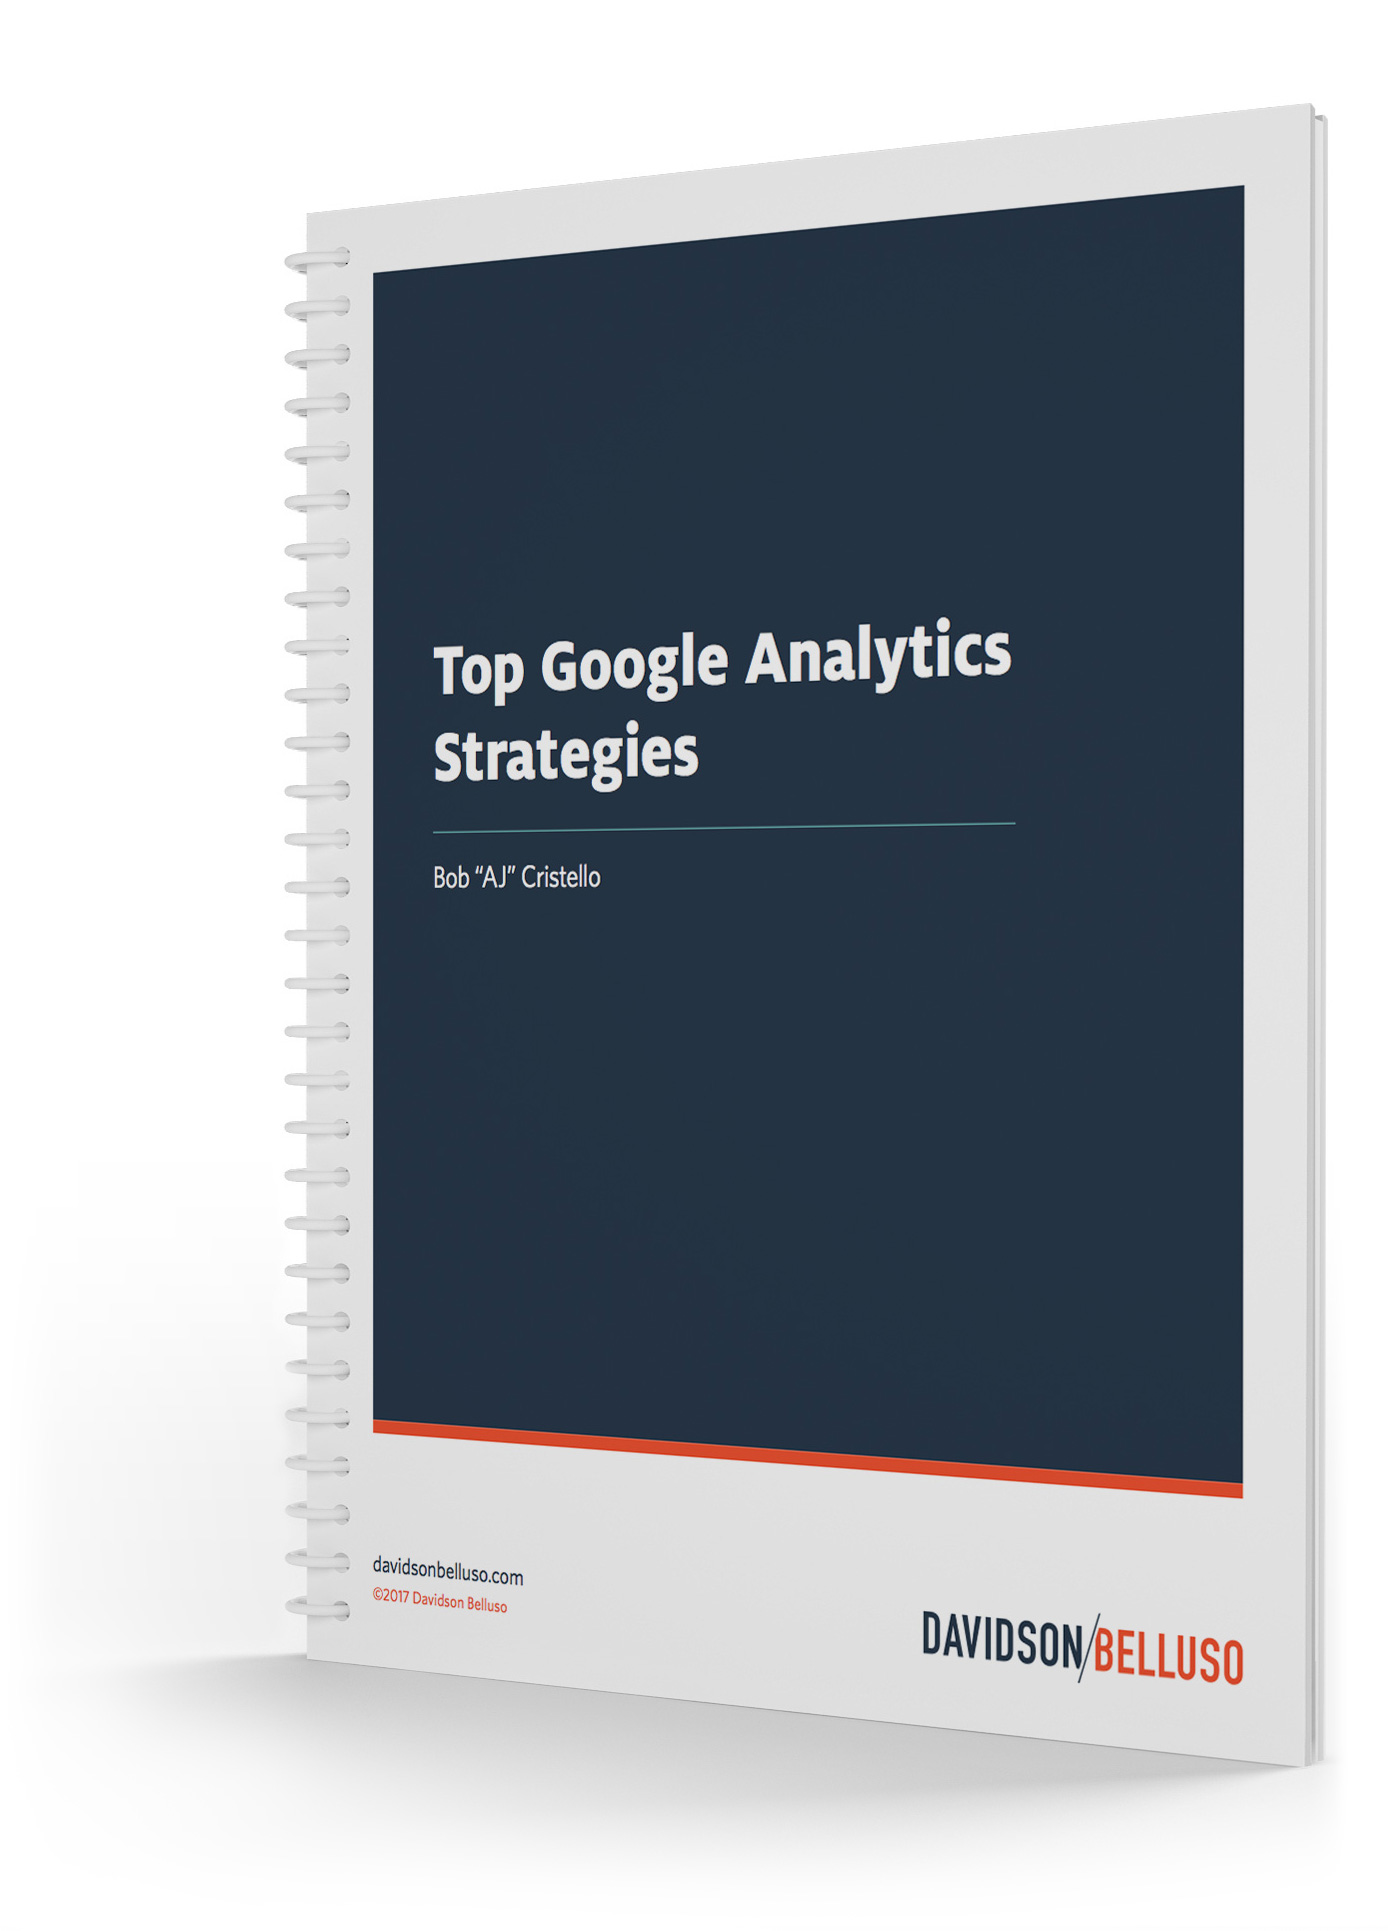 DAV-Whitepaper_1 Top Google Analytics Strategies